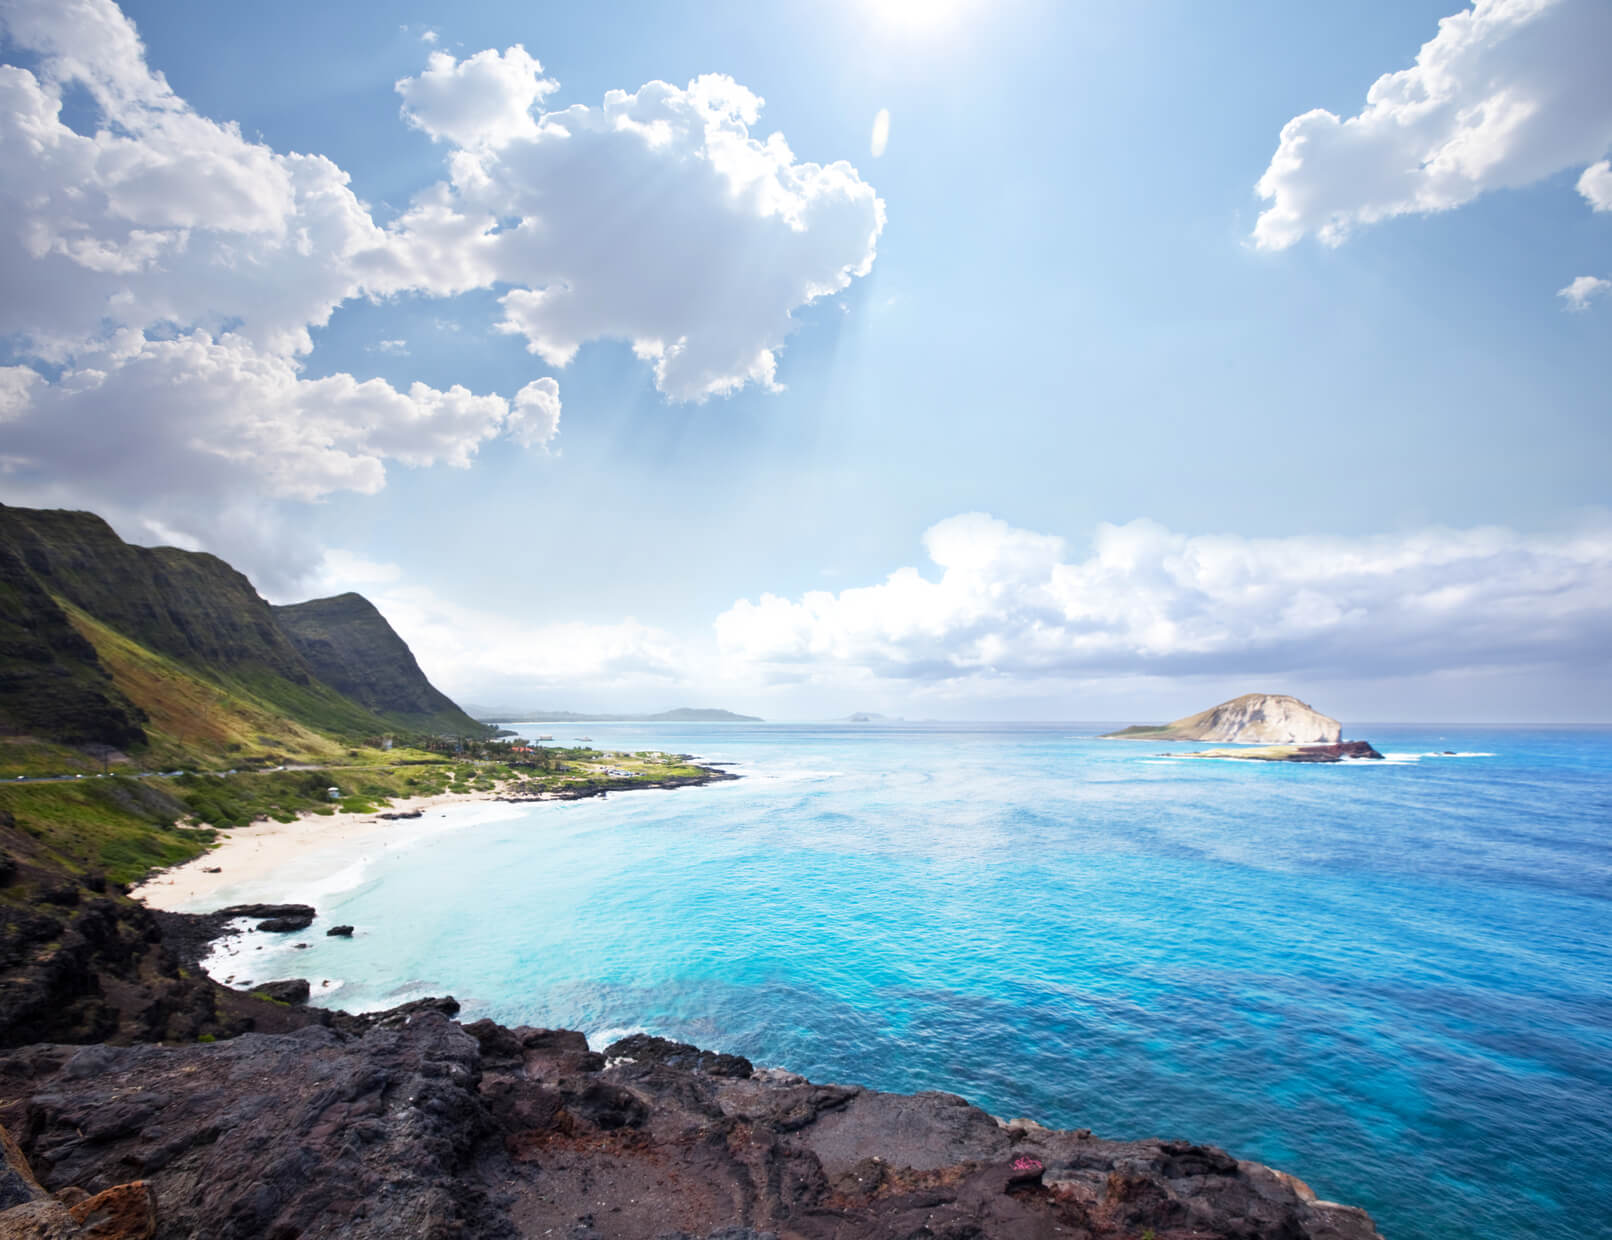 HOT!! Many US cities to Hawaii (& vice versa) from only $197 roundtrip